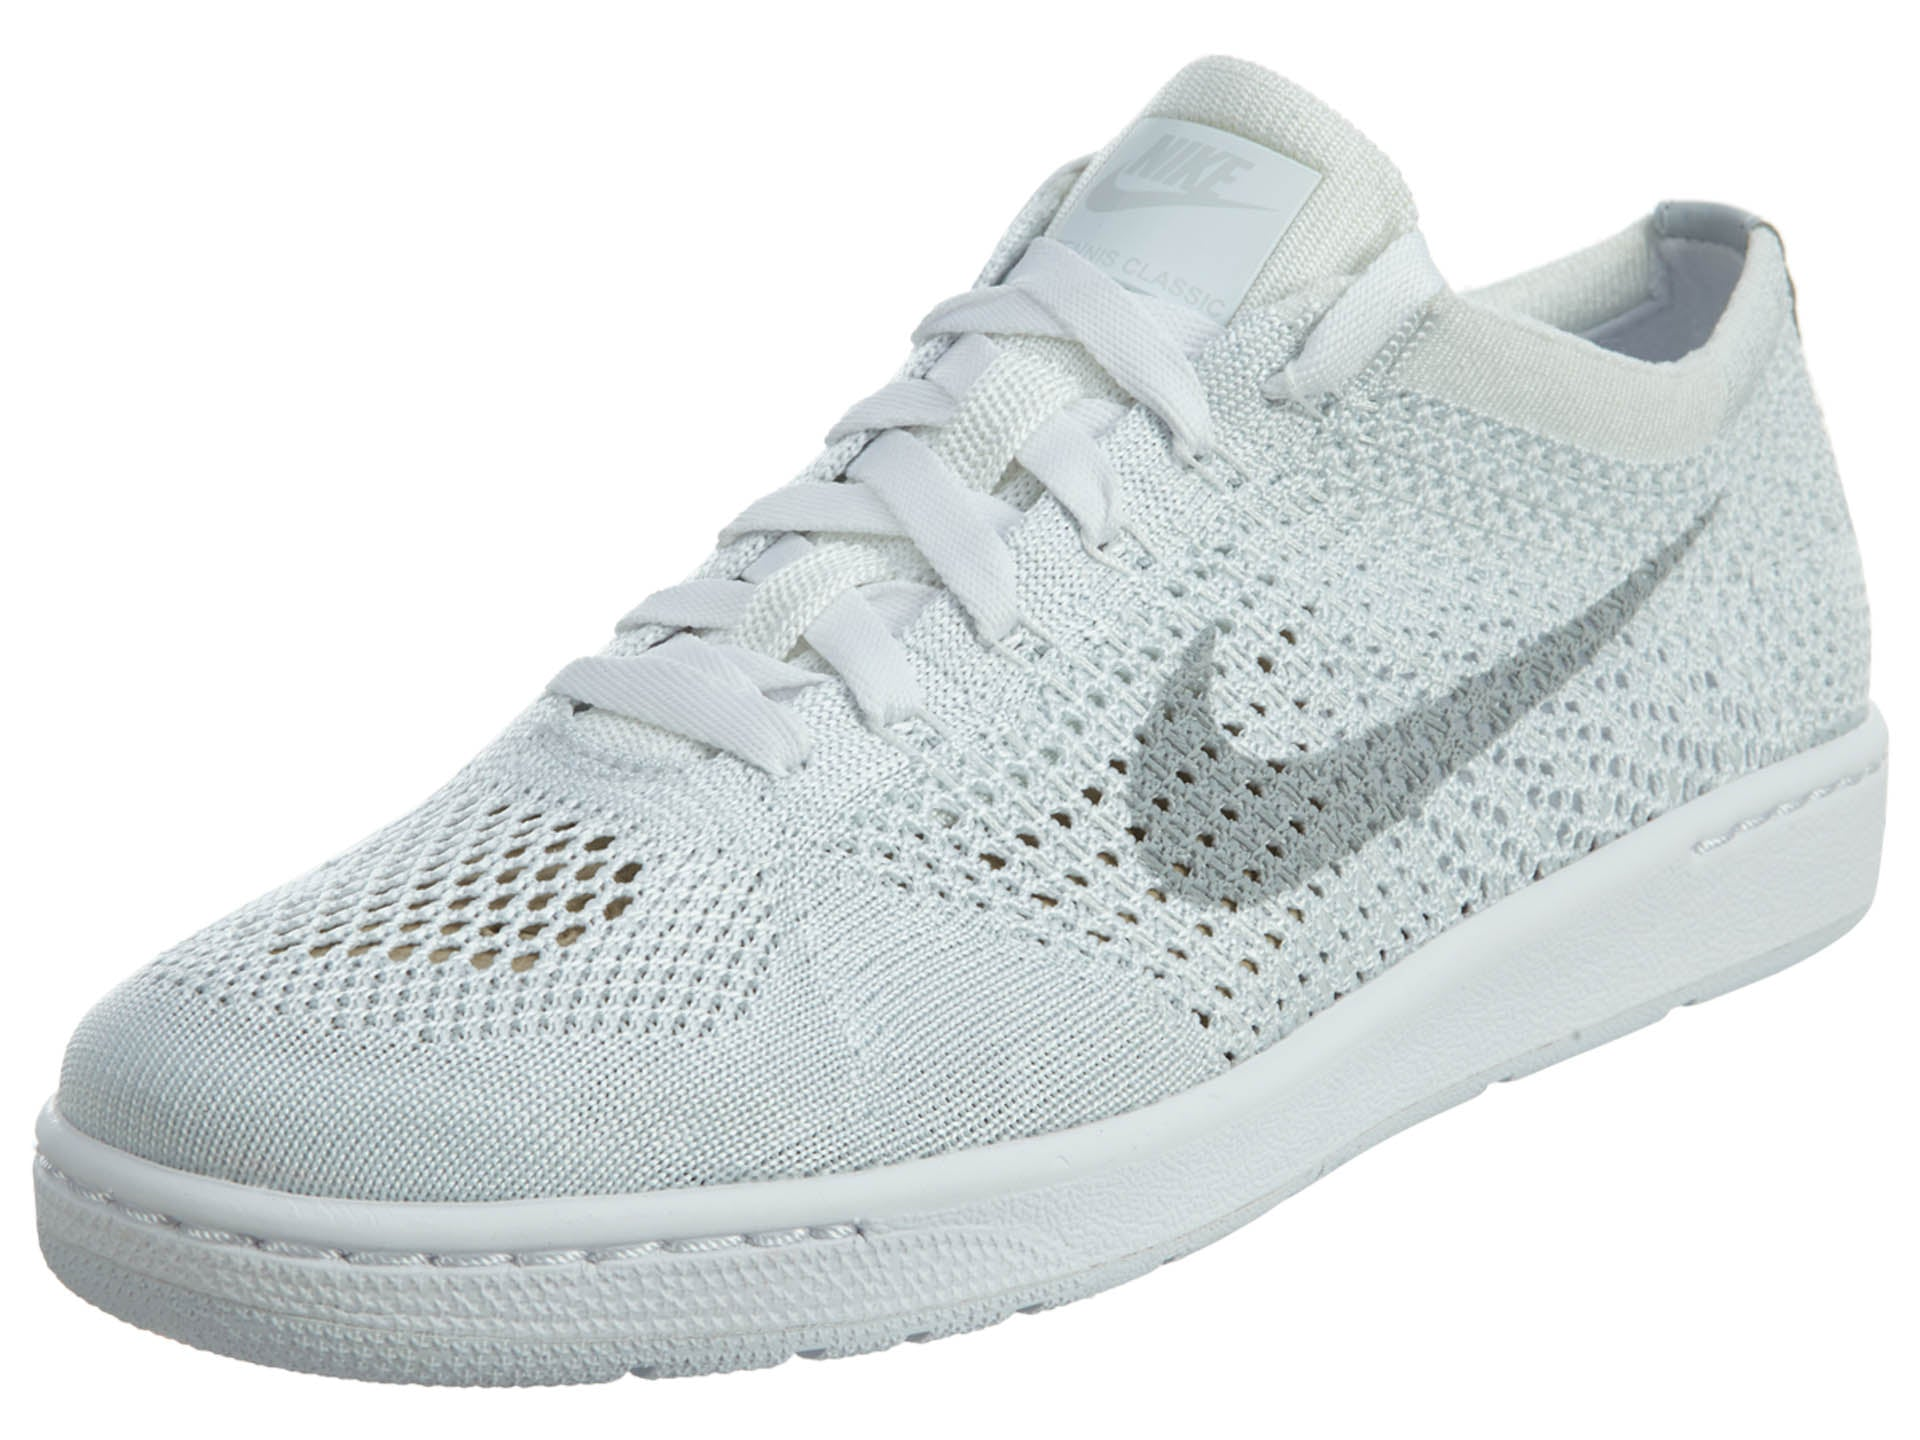 timeless design bbaab 16667 Nike Tennis Classic Ultra Flyknit Womens Style   833860 – TheEagleShoes